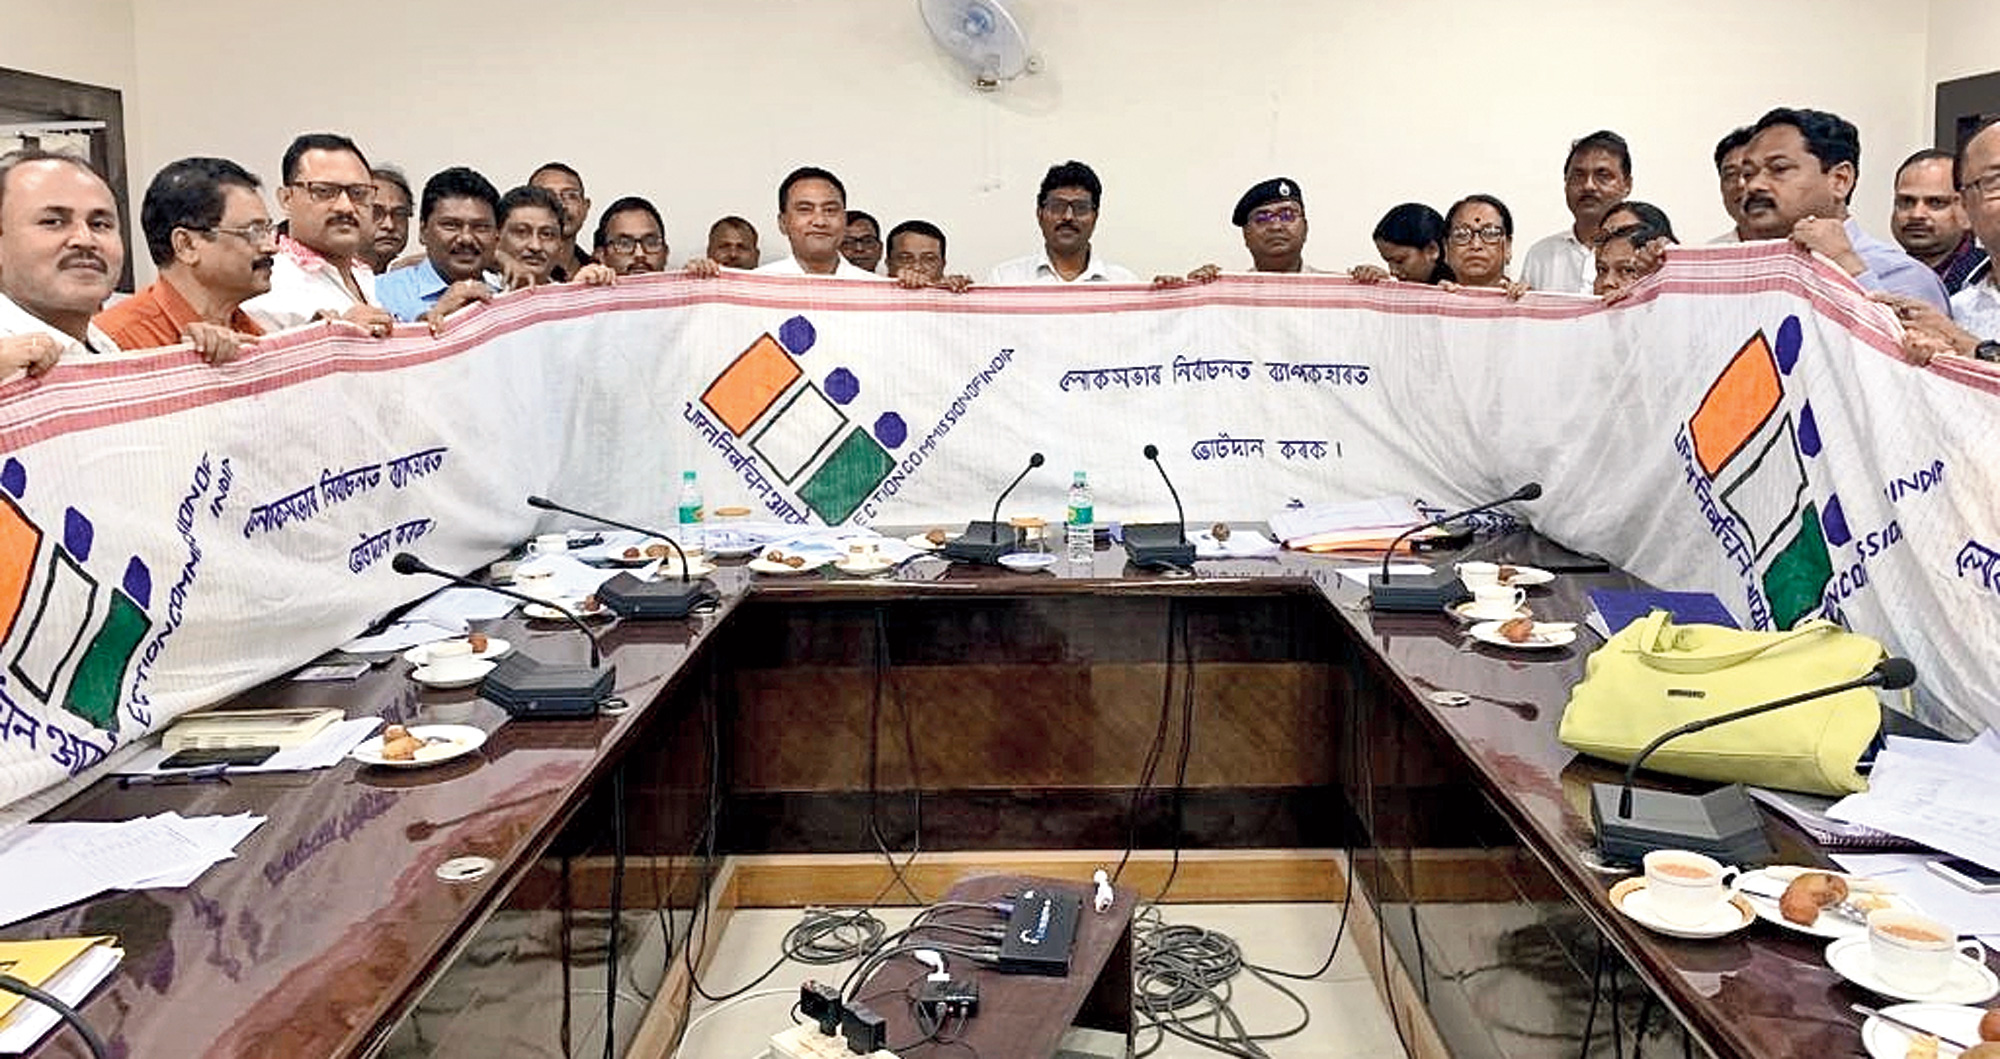 Election Commission observers unveil the gamosa in Nagaon.